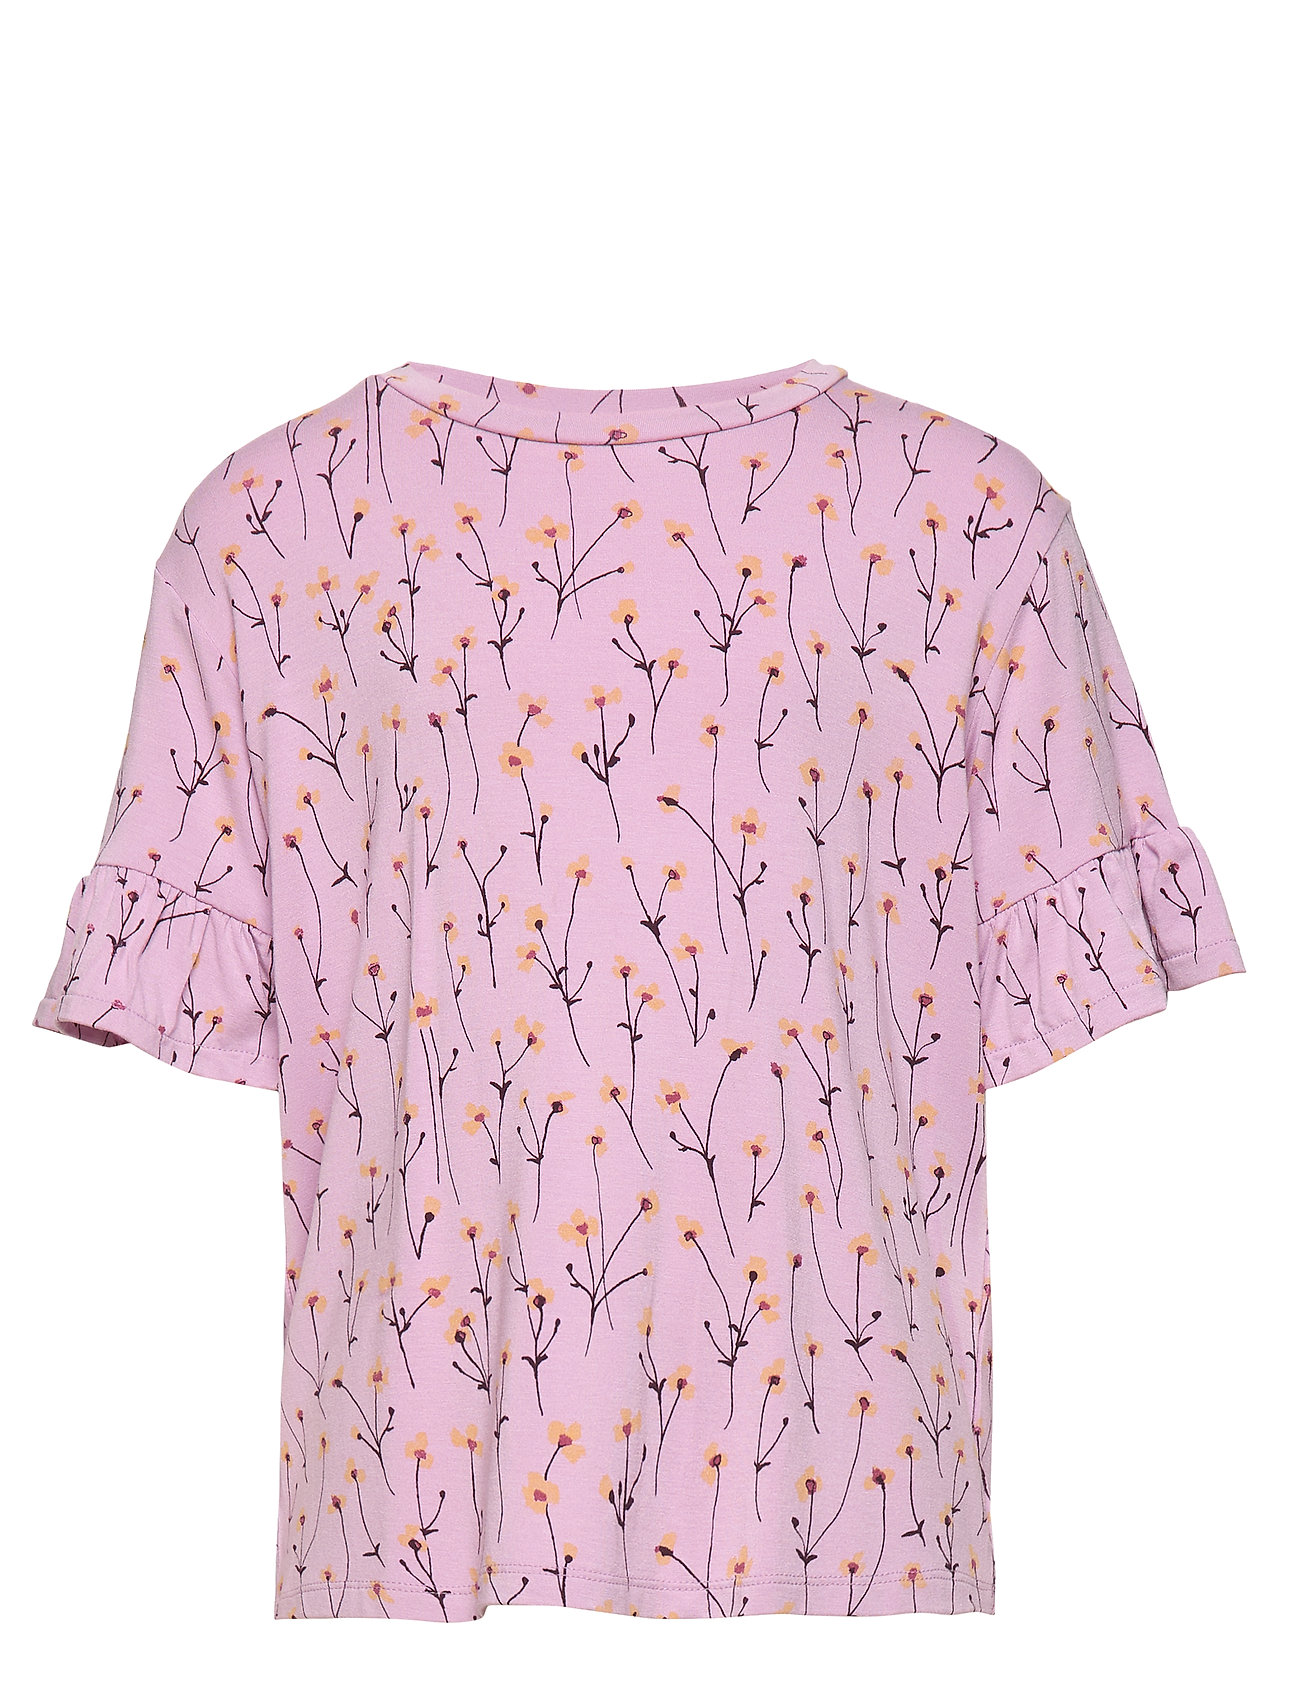 Soft Gallery Debbie T-shirt - DAWN PINK, AOP BUTTERCUP S